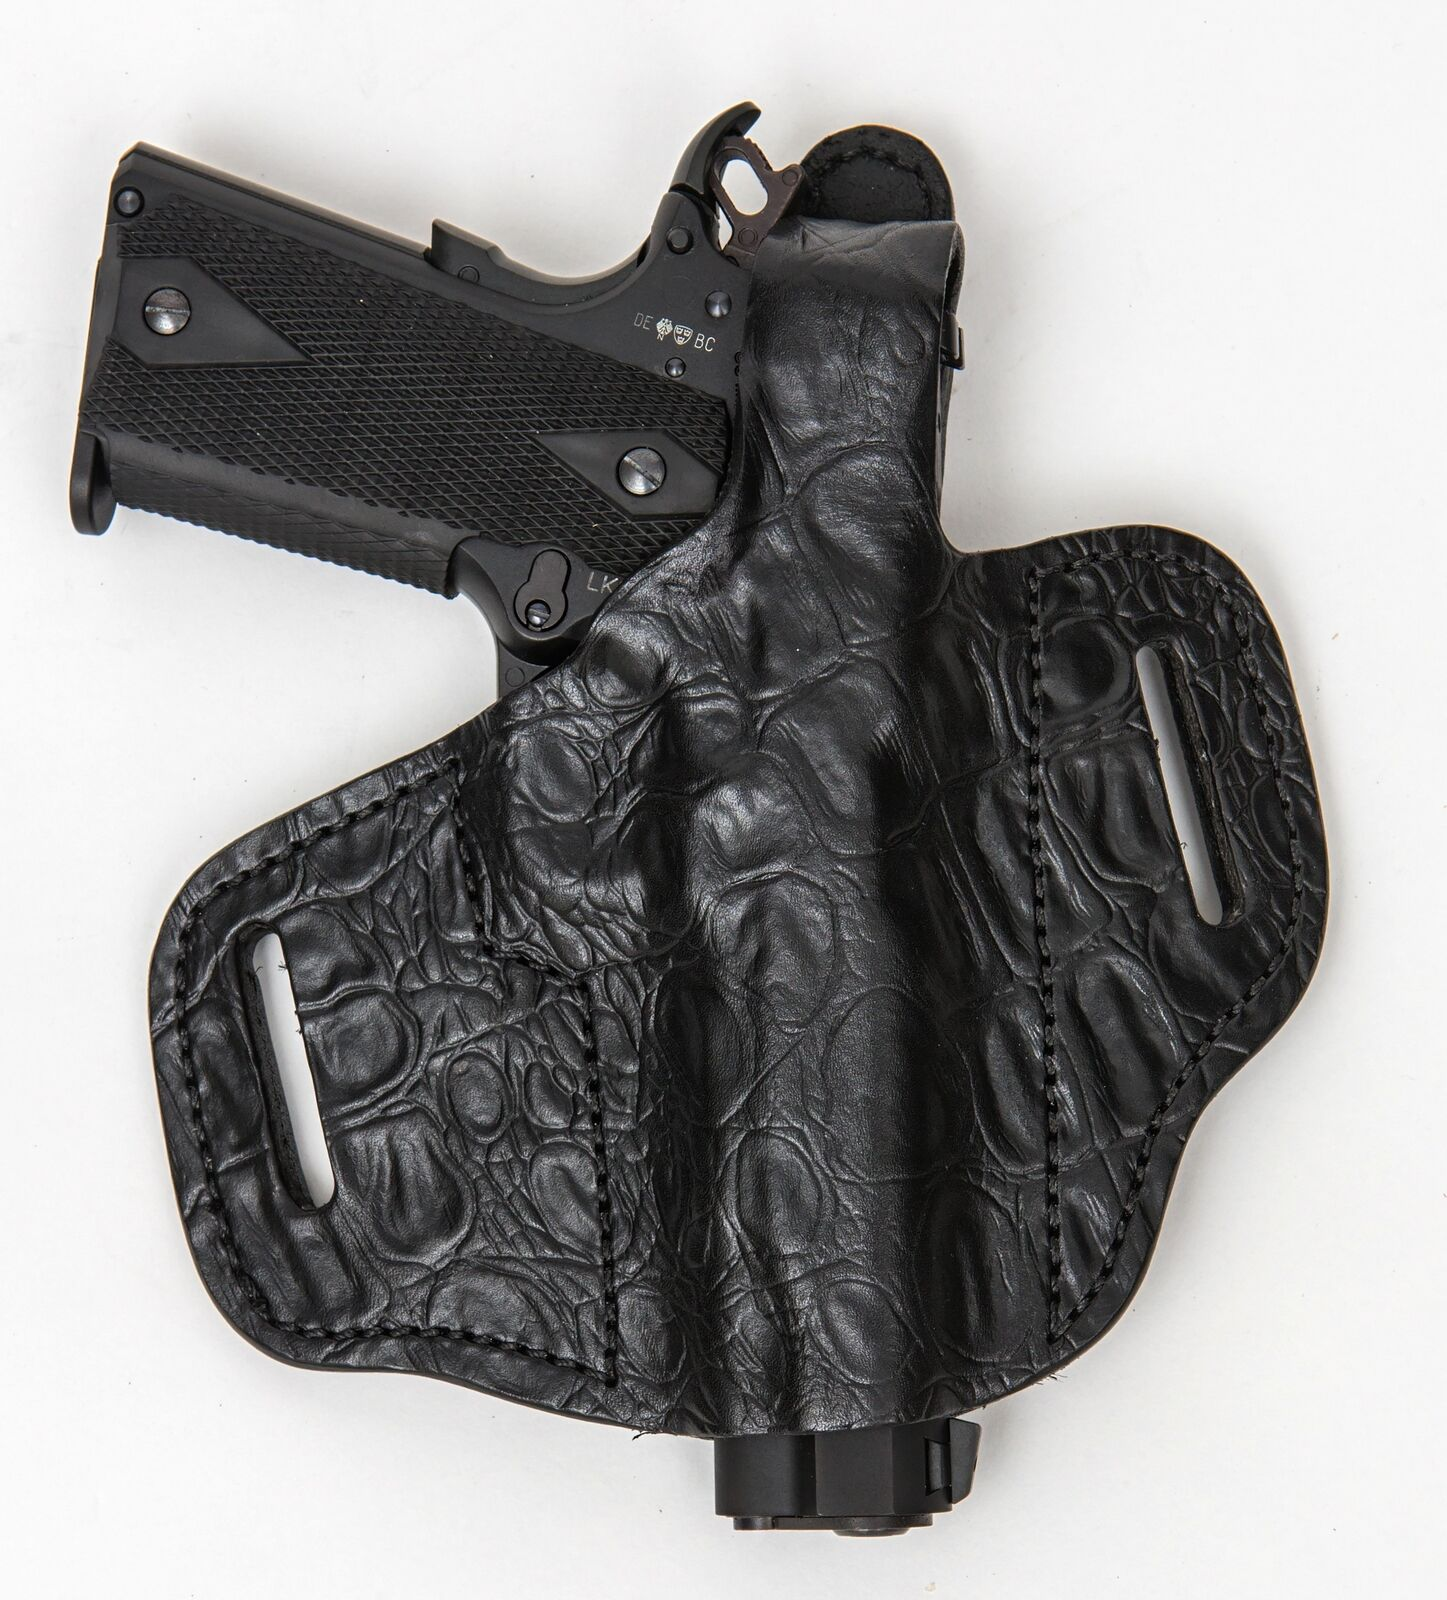 On Duty Conceal RH LH OWB Leder Gun Holster For CZ P09